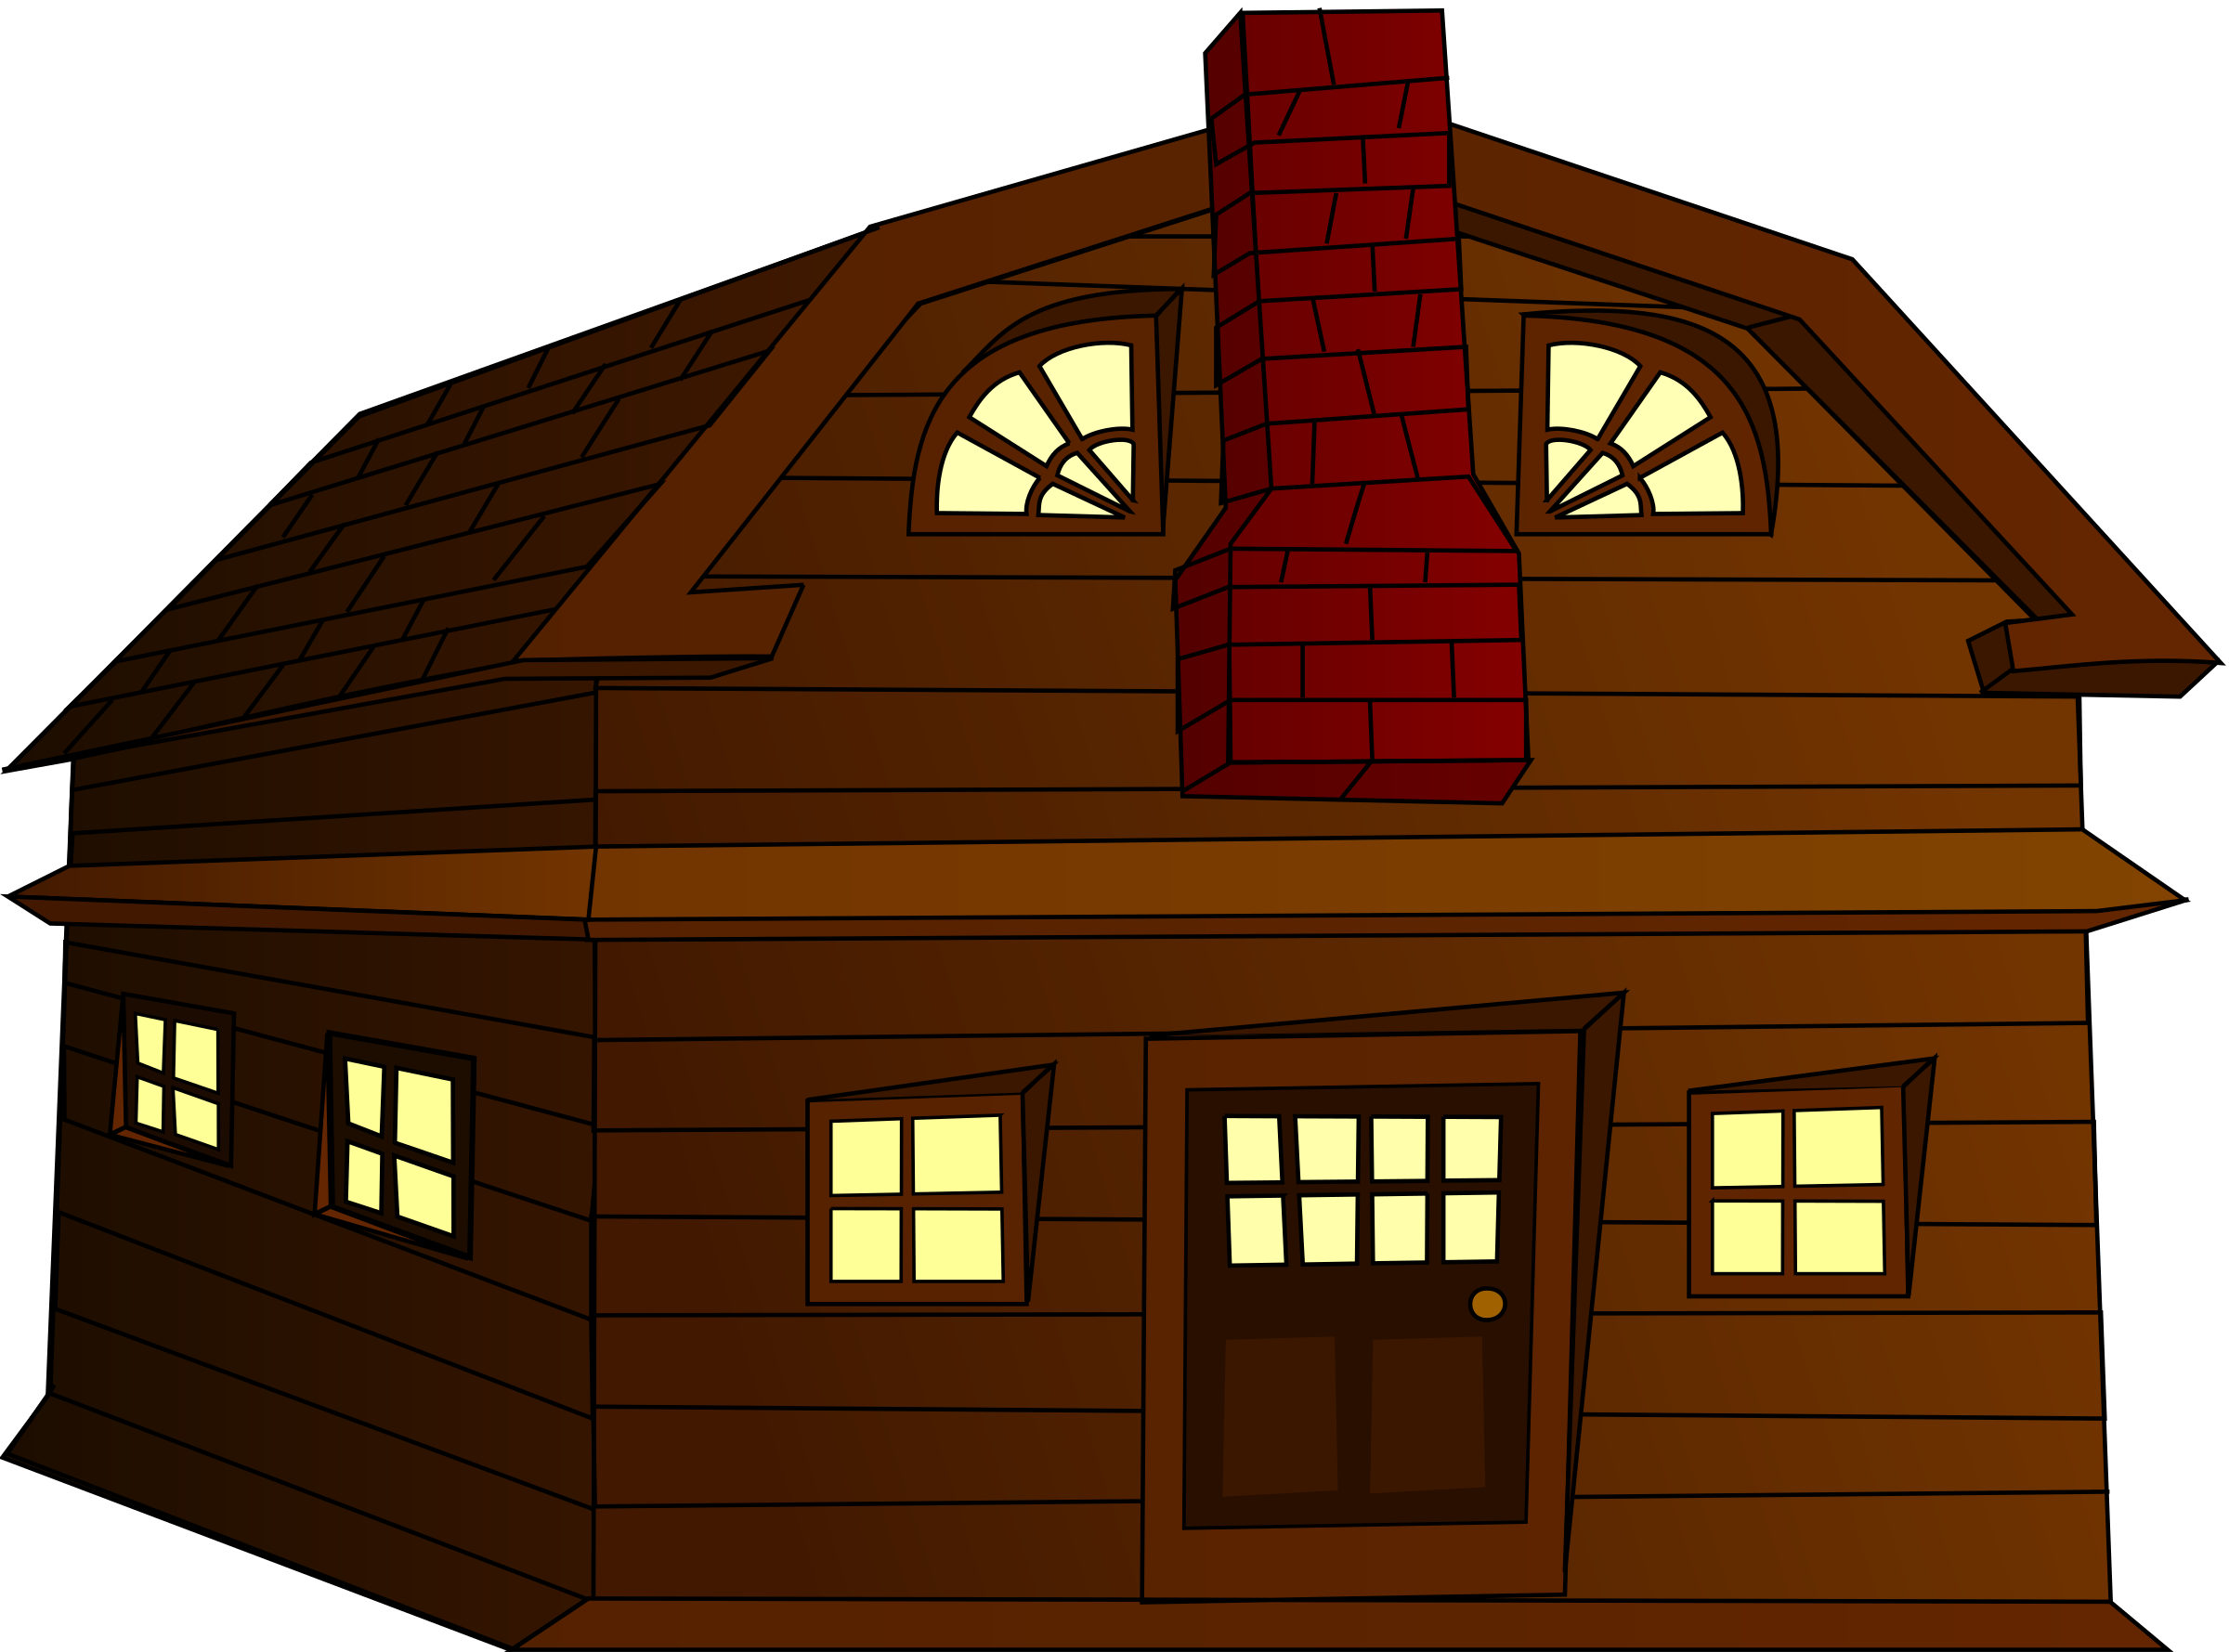 cgbug-Halloween-Horror-House-Small.png